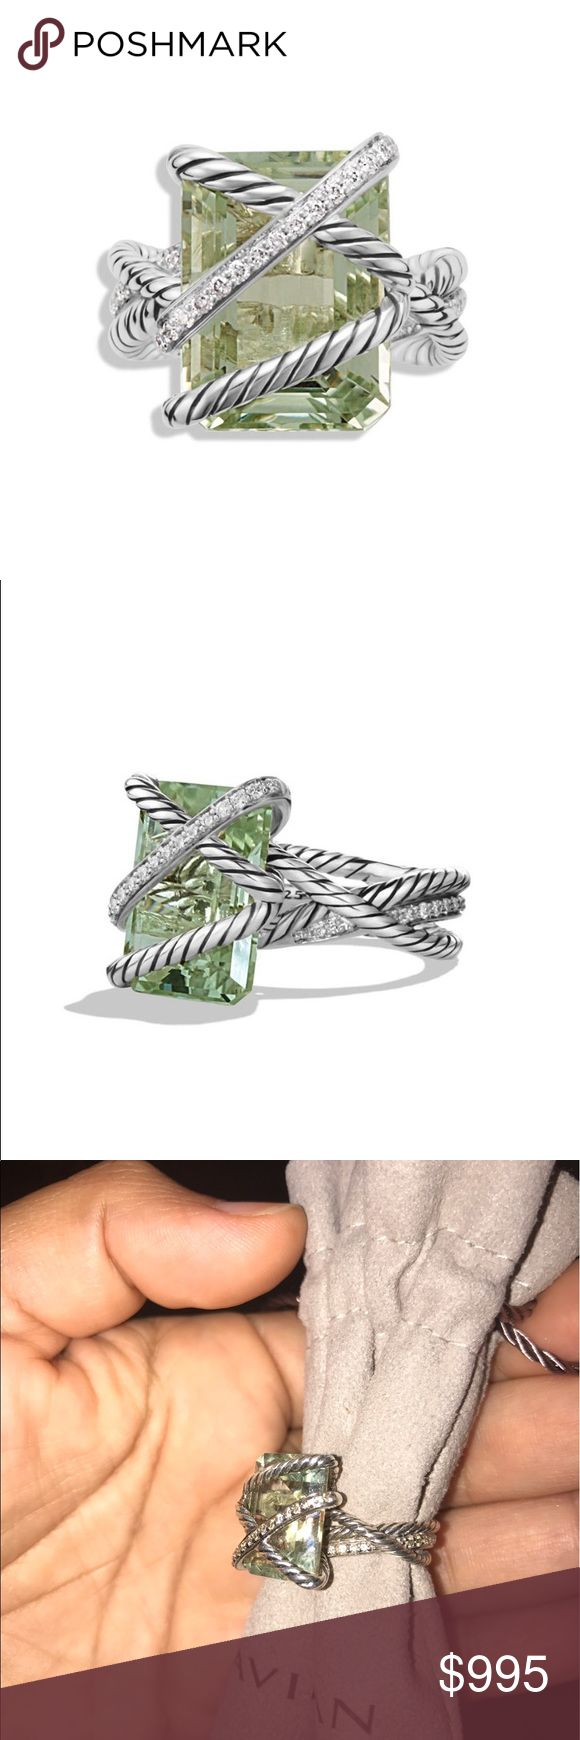 David Yurman 925 Prasiolite And Diamonds ring 💍 Authentic. Stunning and hard to find. Sold out. Gorgeous David Yurman Cable Wrap Sterling silver Prasiolite and Diamonds ring. Goes with every outfit. Very minimal wear. Dustbag is included. Ring will be authenticated by Poshmark Concierge at no extra cost. ❌❌NO TRADEX❌❌Ring retailed for $1450 plus taxes. A must have and great to add to your collection. 😊❌FIRM PRICE❌❌FIRM PRICE❌❌ David Yurman Jewelry Rings